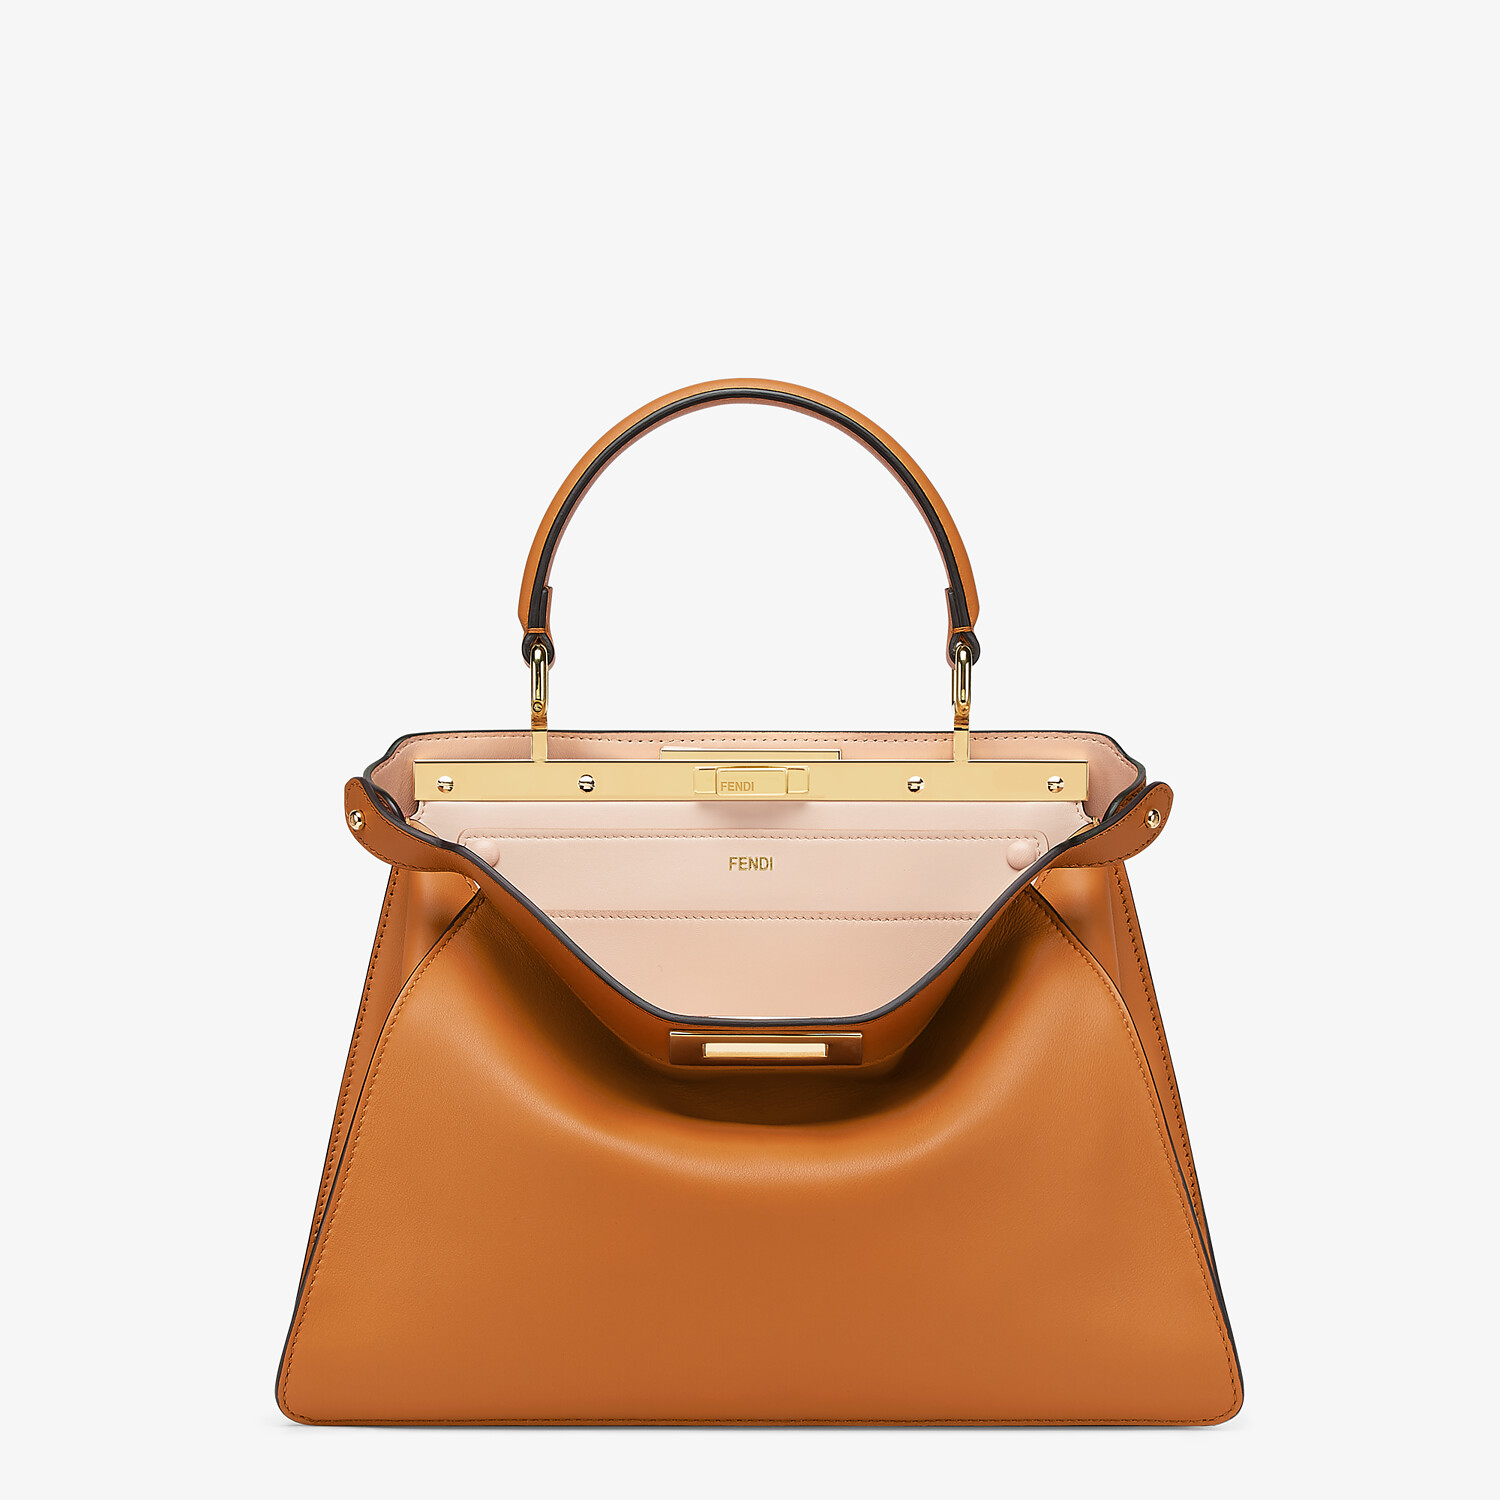 FENDI PEEKABOO ISEEU MEDIUM -  Brown leather bag - view 1 detail